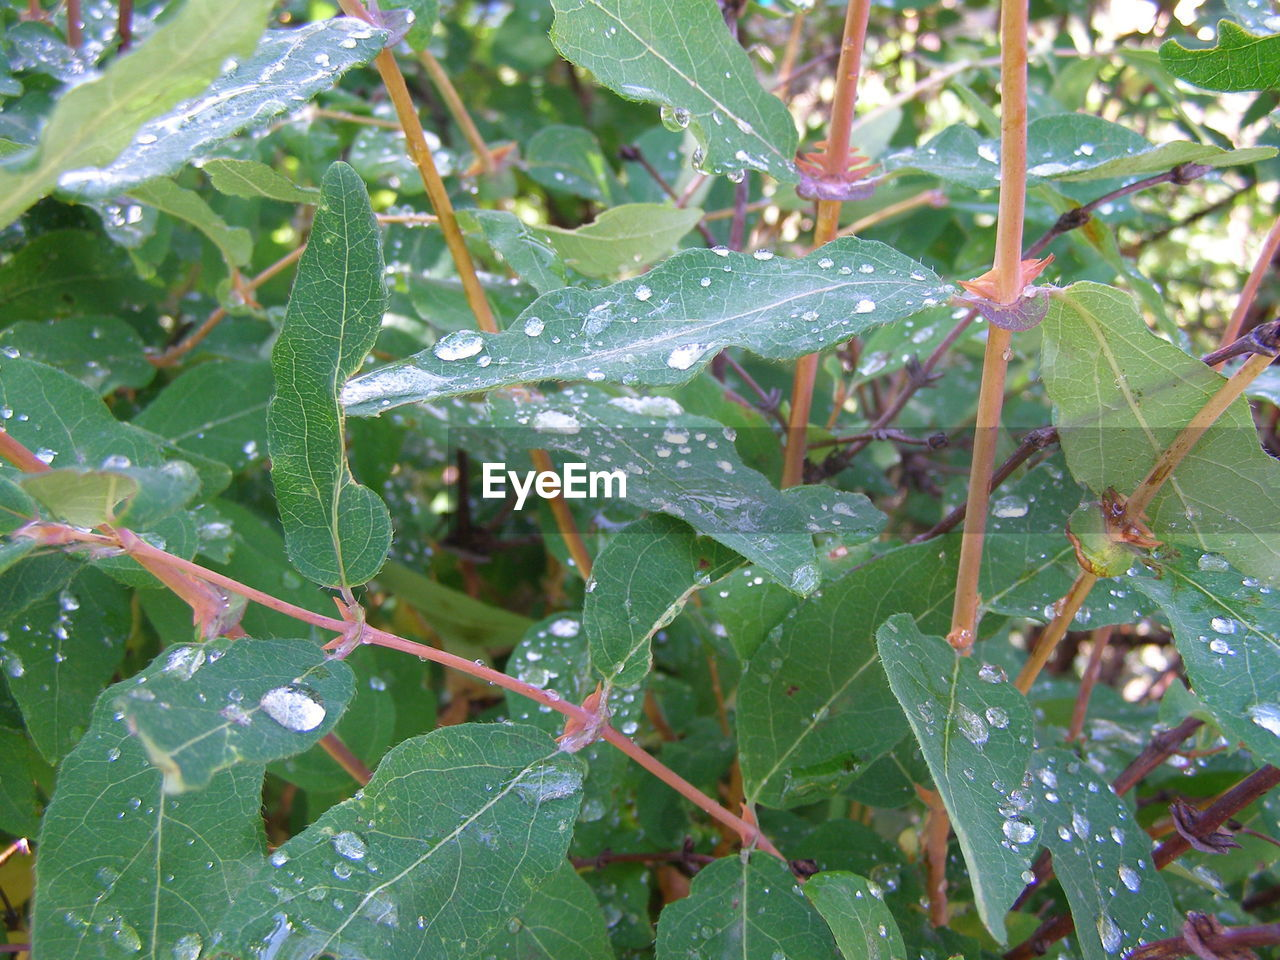 plant part, leaf, plant, growth, green color, nature, close-up, day, beauty in nature, no people, drop, water, wet, tree, outdoors, focus on foreground, tranquility, fragility, rain, raindrop, dew, leaves, purity